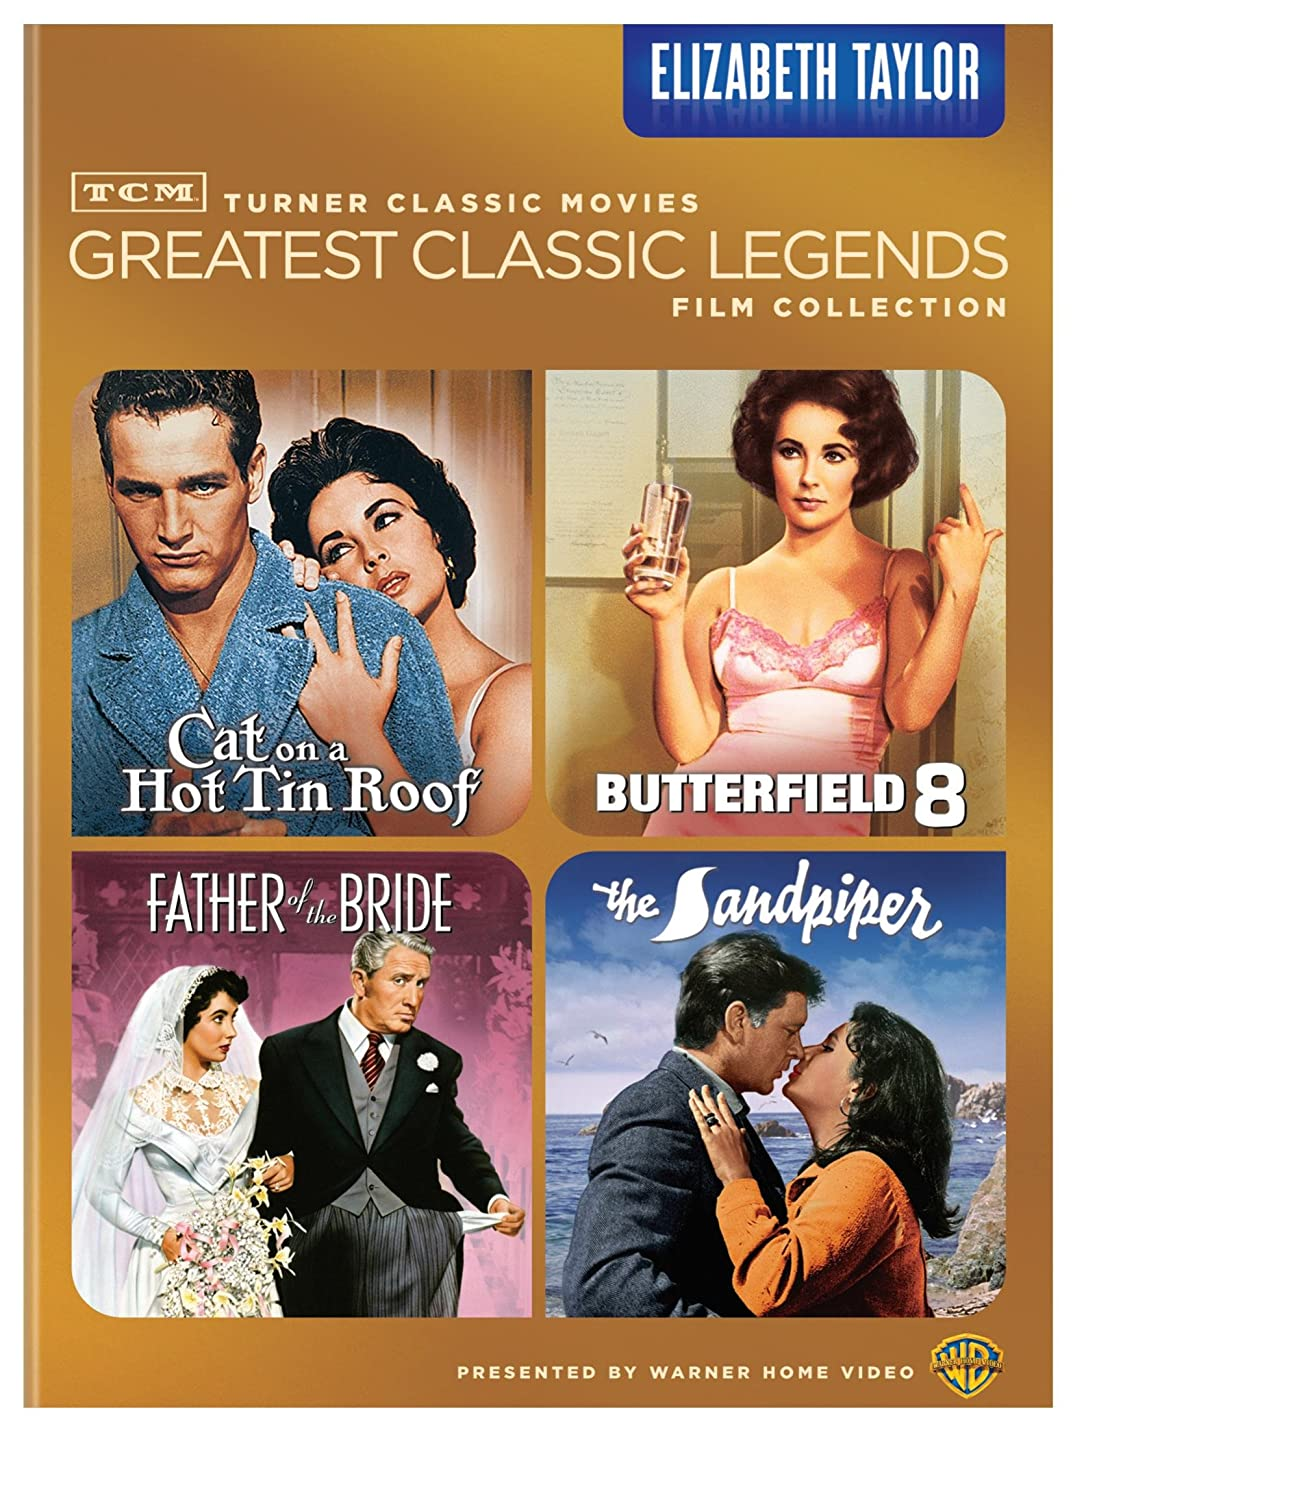 Turner Classic Movies greatest classic legends film collection. Elizabeth Taylor [videorecording]